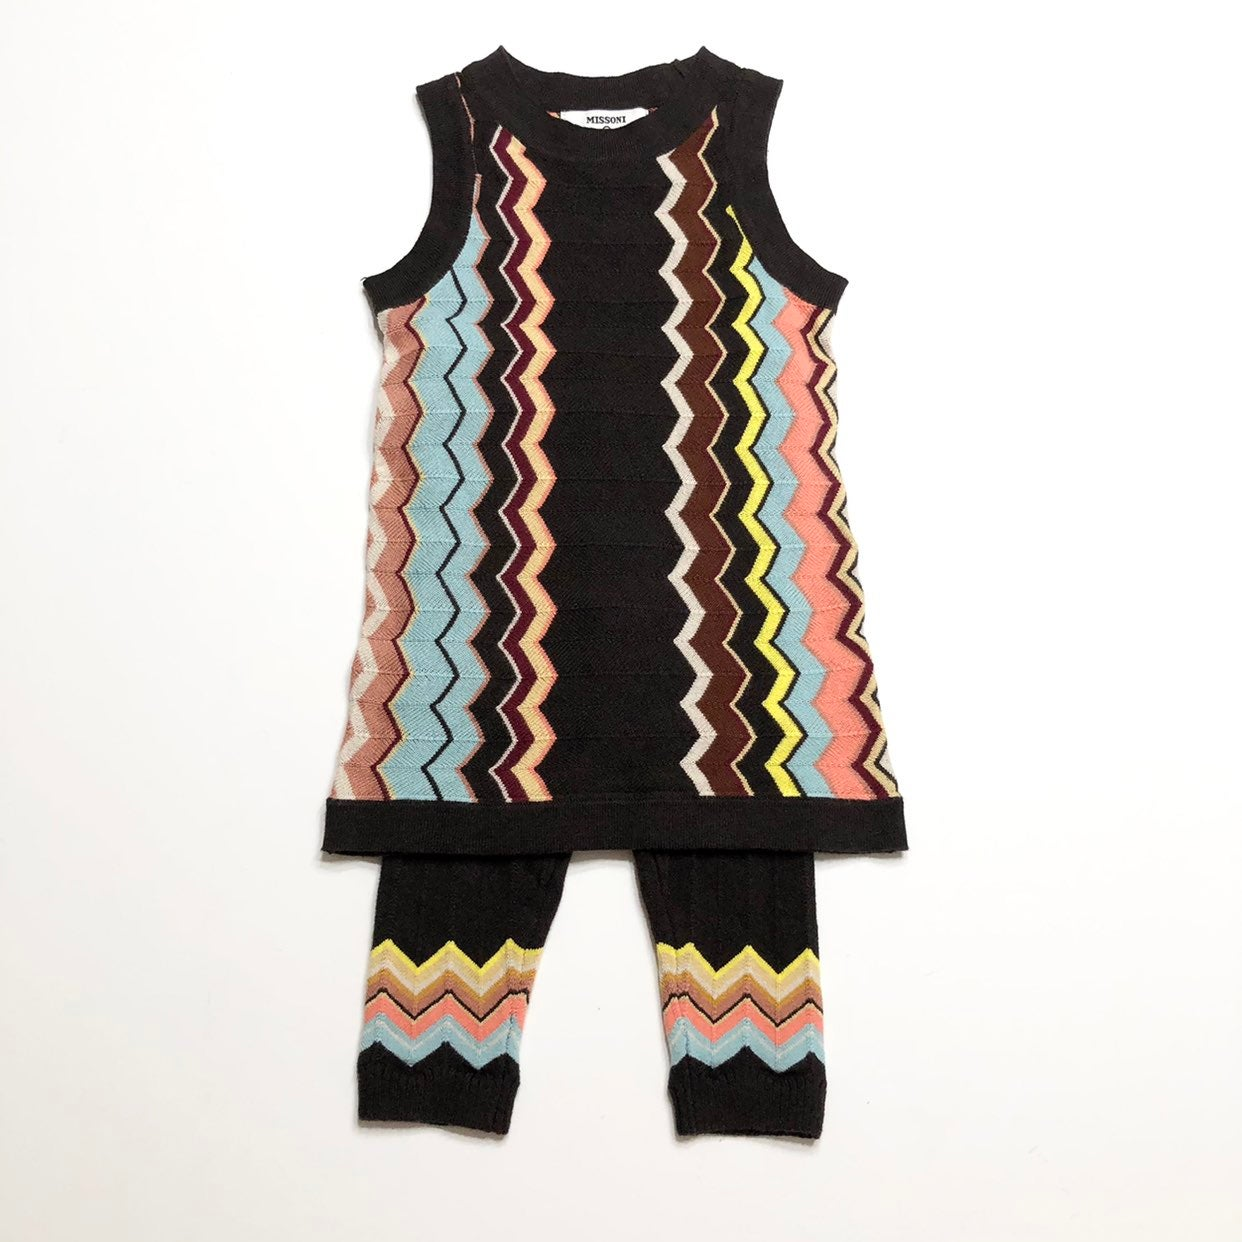 Missoni Infant Toddler Girls Chevron Stripe Zig Zag Sweater Pants NWT Free Ship